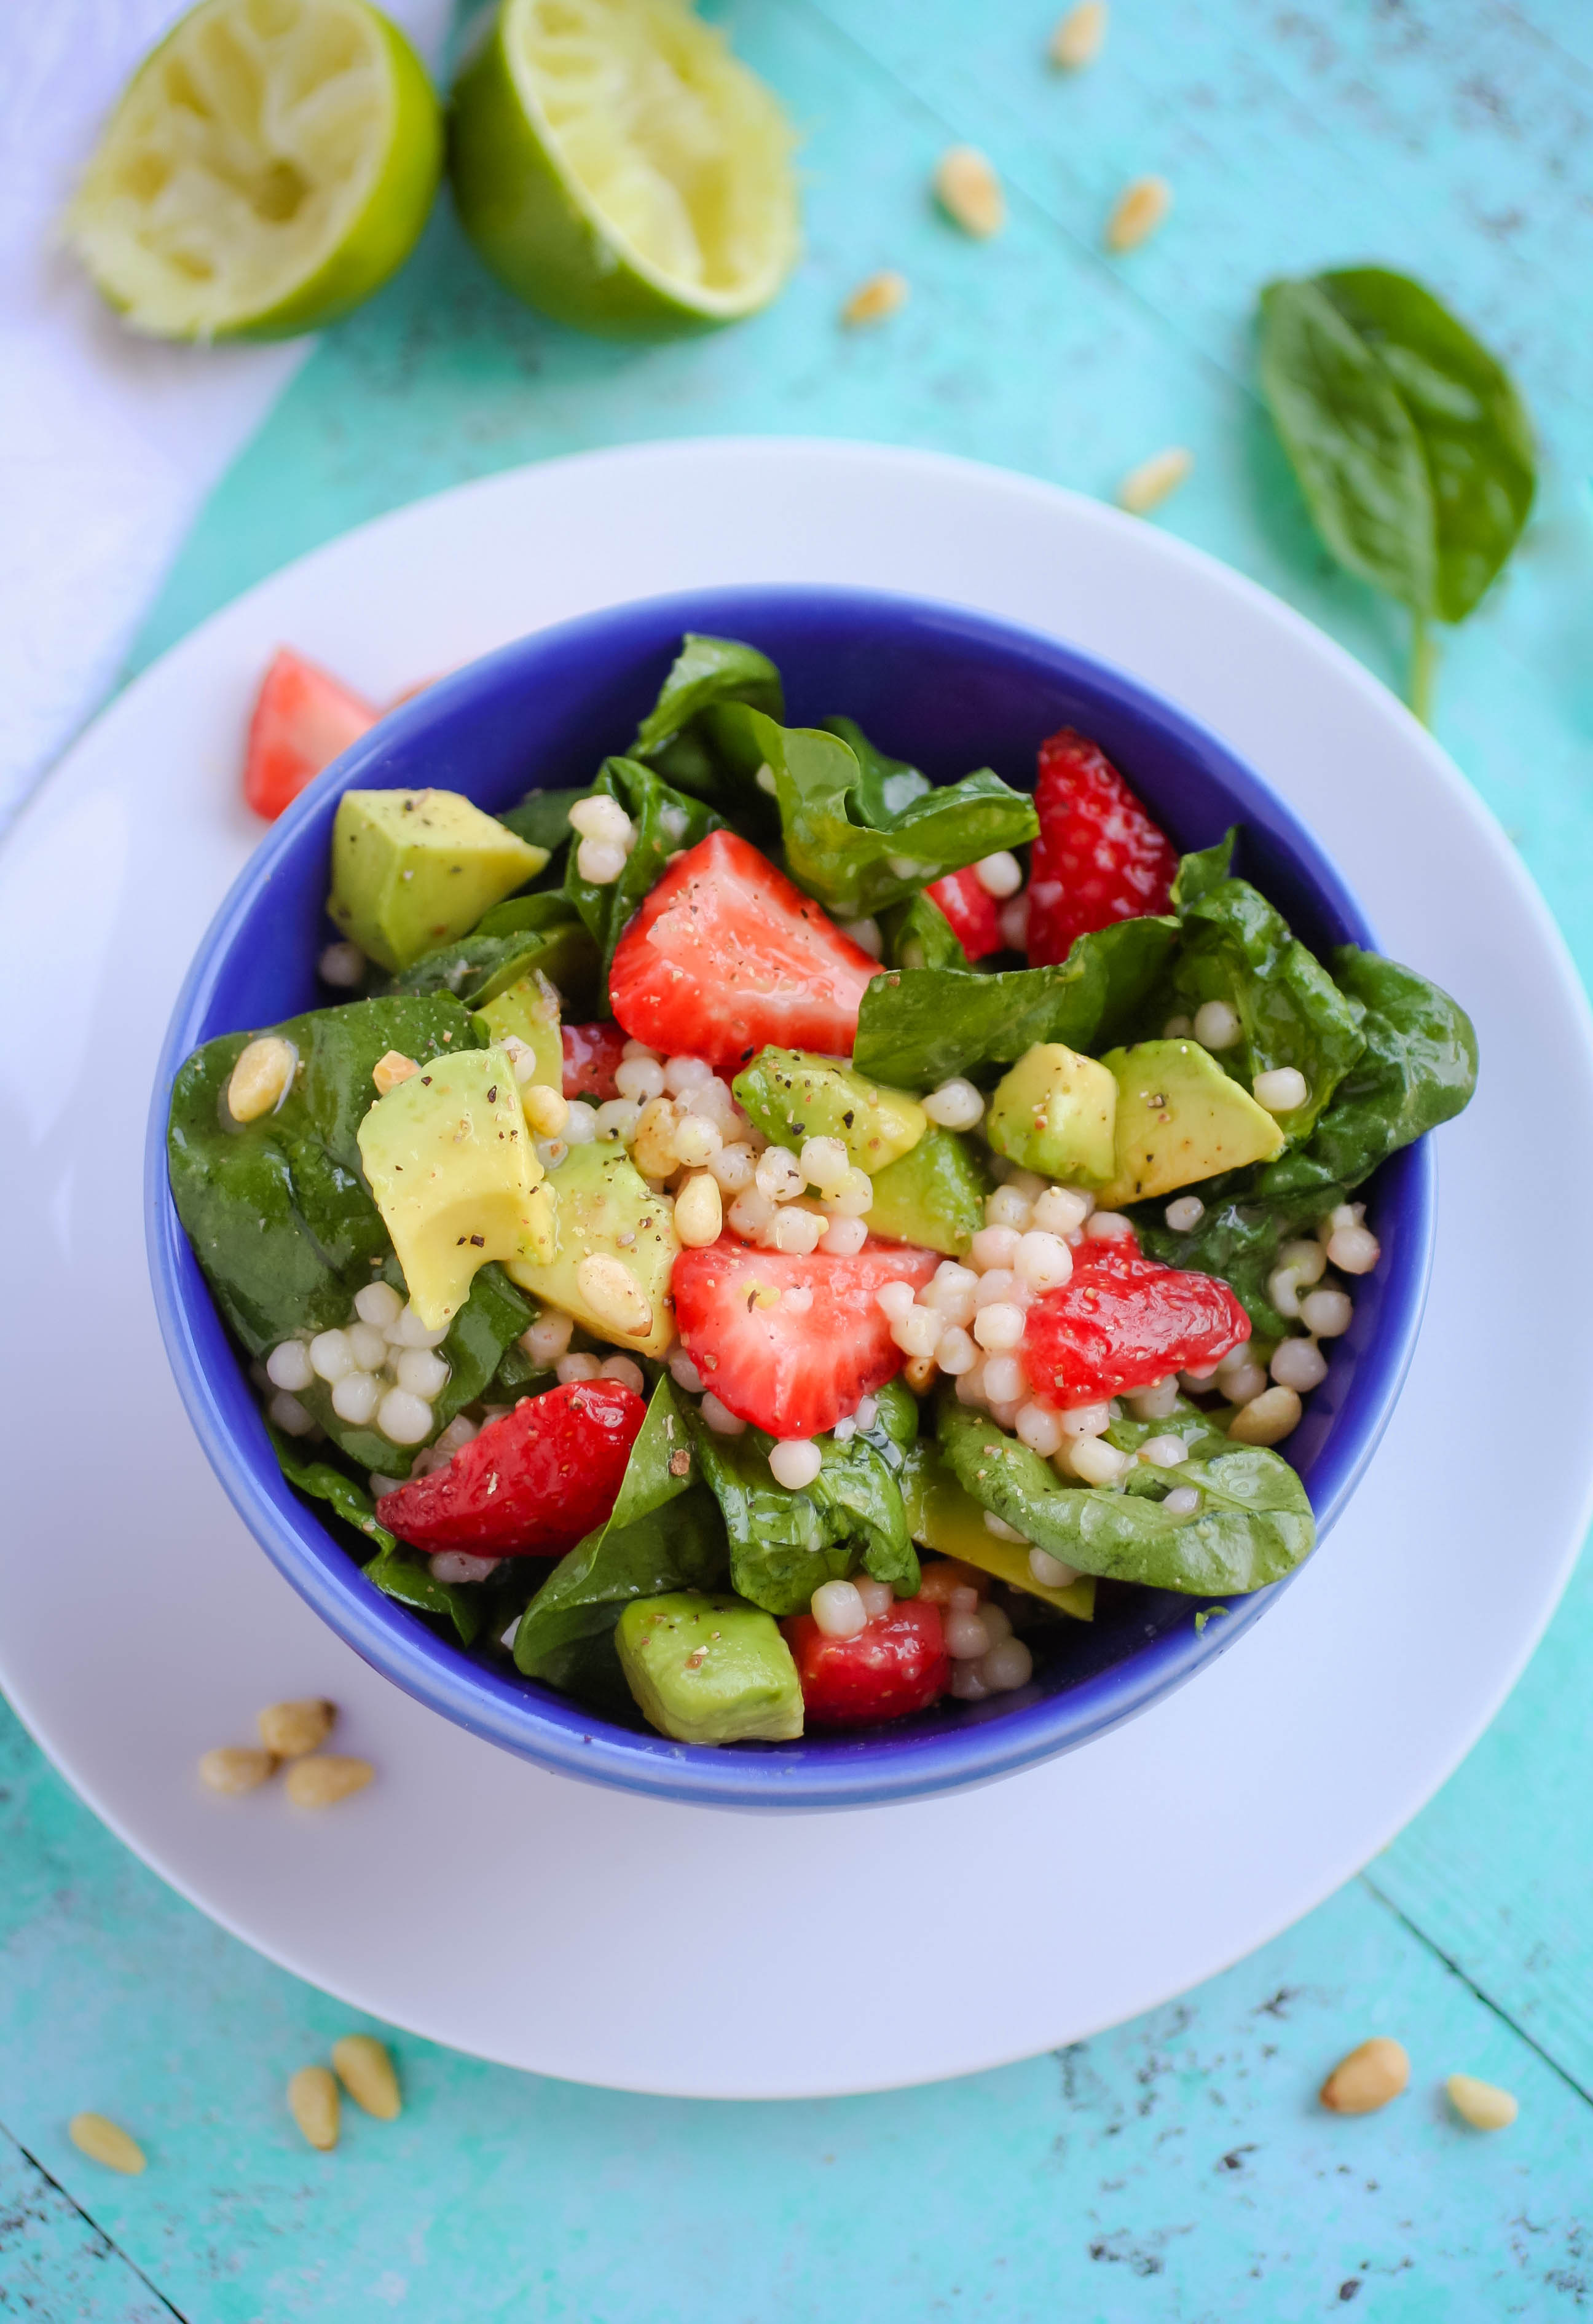 Spinach and Couscous Salad with Strawberries, Avocado & Honey-Lime Dressing is my new favorite summer salad. Spinach and Couscous Salad with Strawberries, Avocado & Honey-Lime Dressing is full of flavor and color!